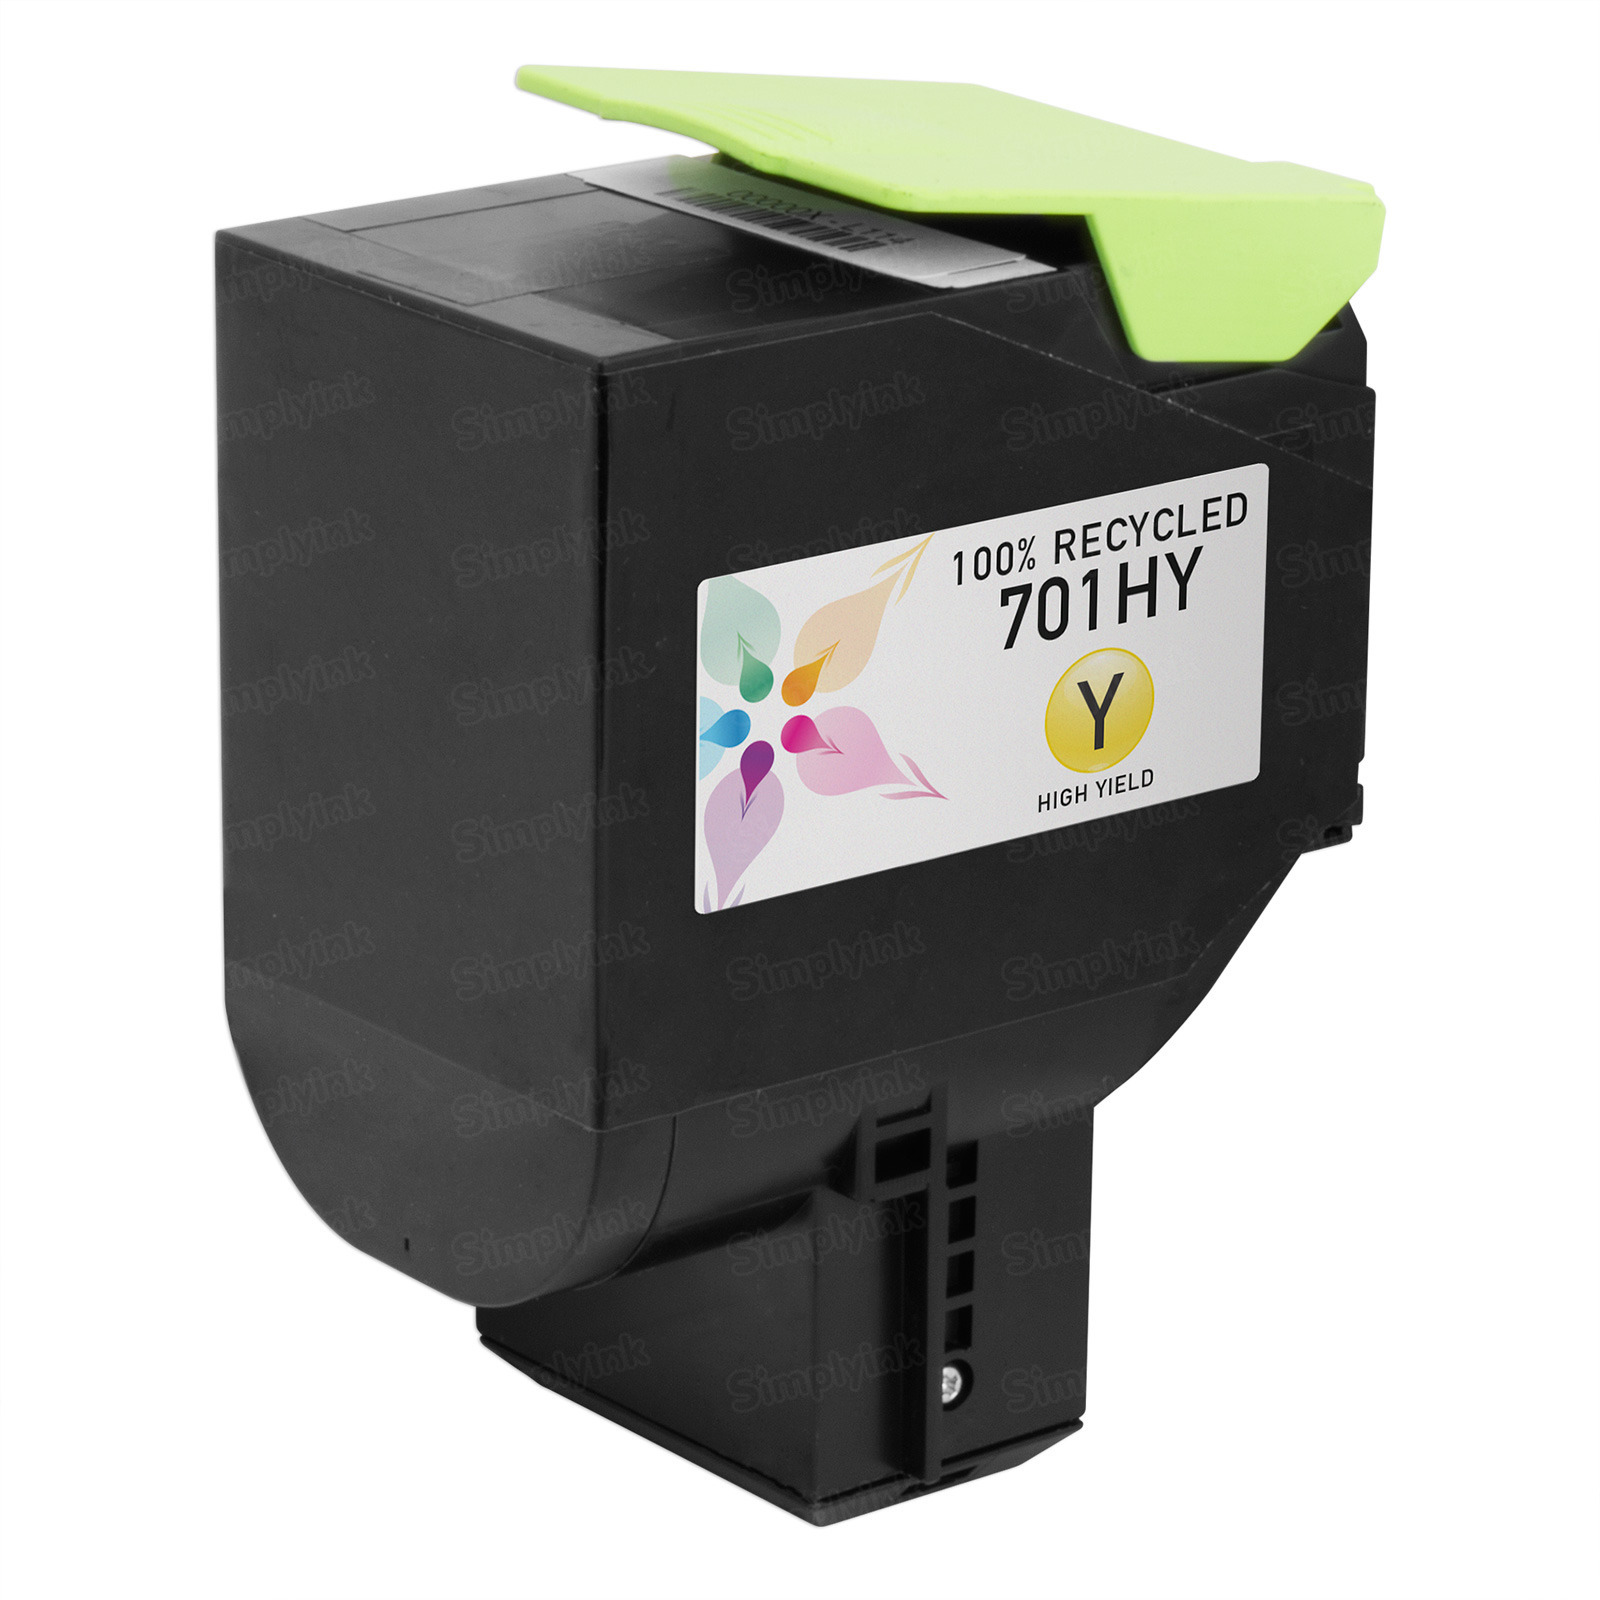 Lexmark Remanufactured HY Yellow Toner, 70C1HY0 (701HY)